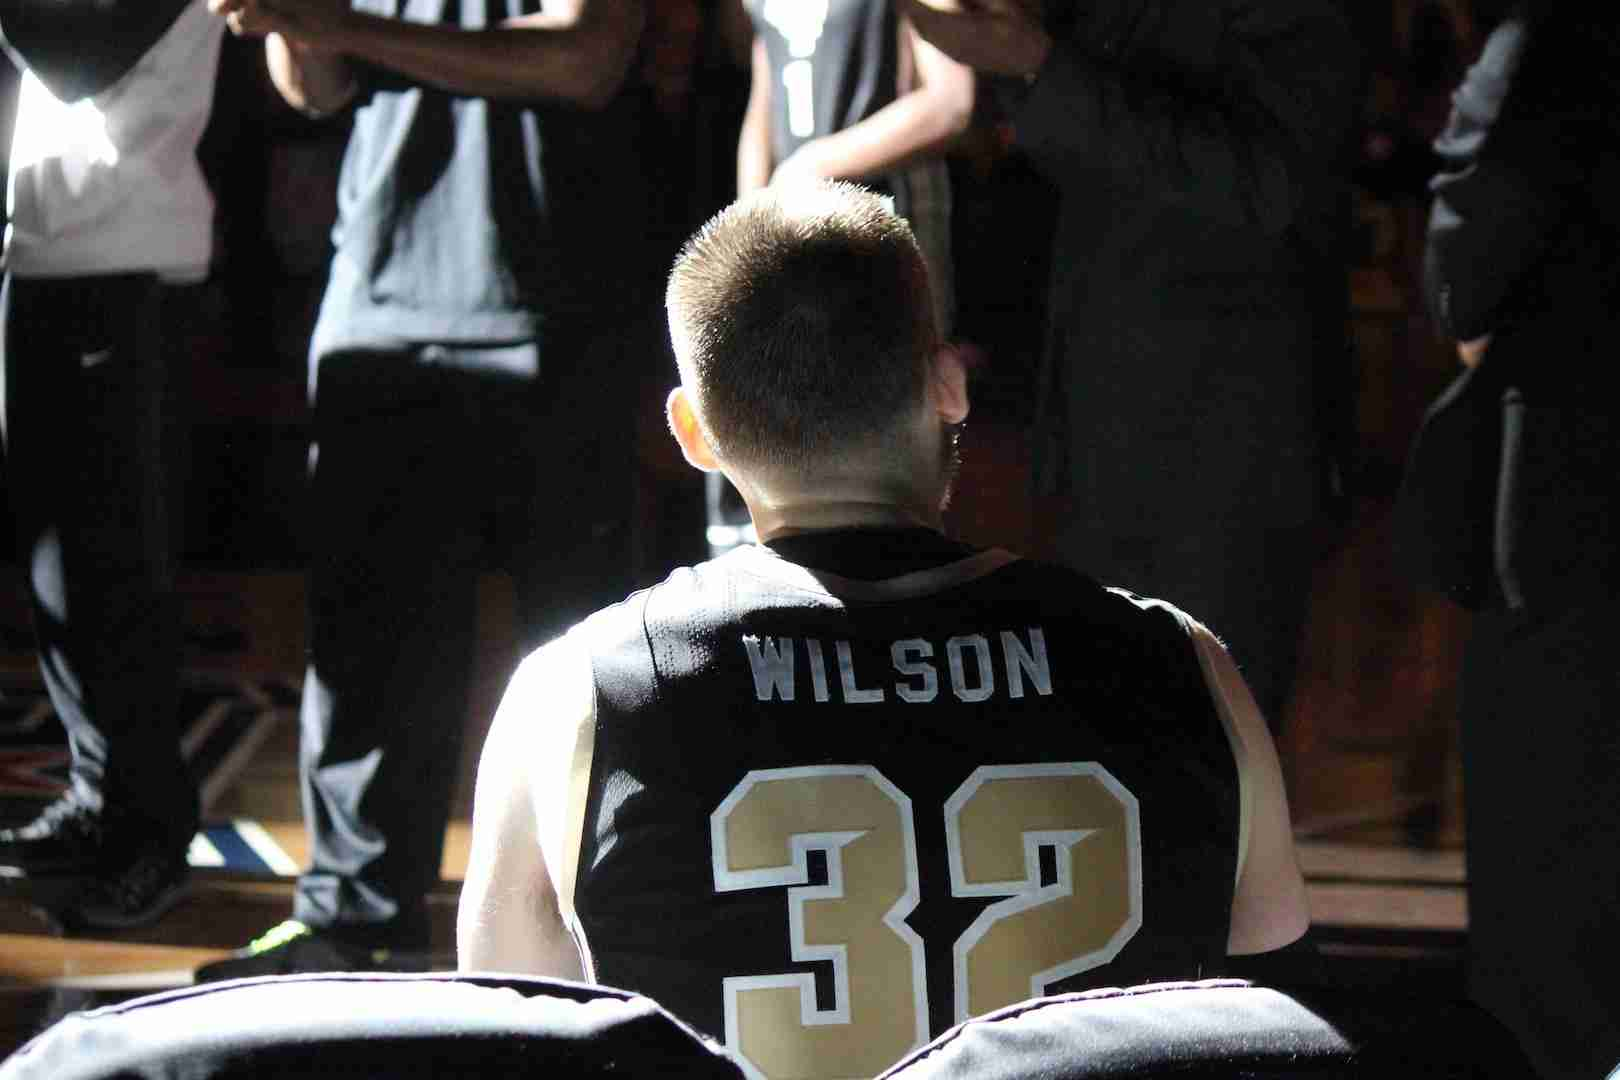 Kasey+Wilson+played+in+his+final+game+at+CFE+Arena+on+Saturday+against+ECU